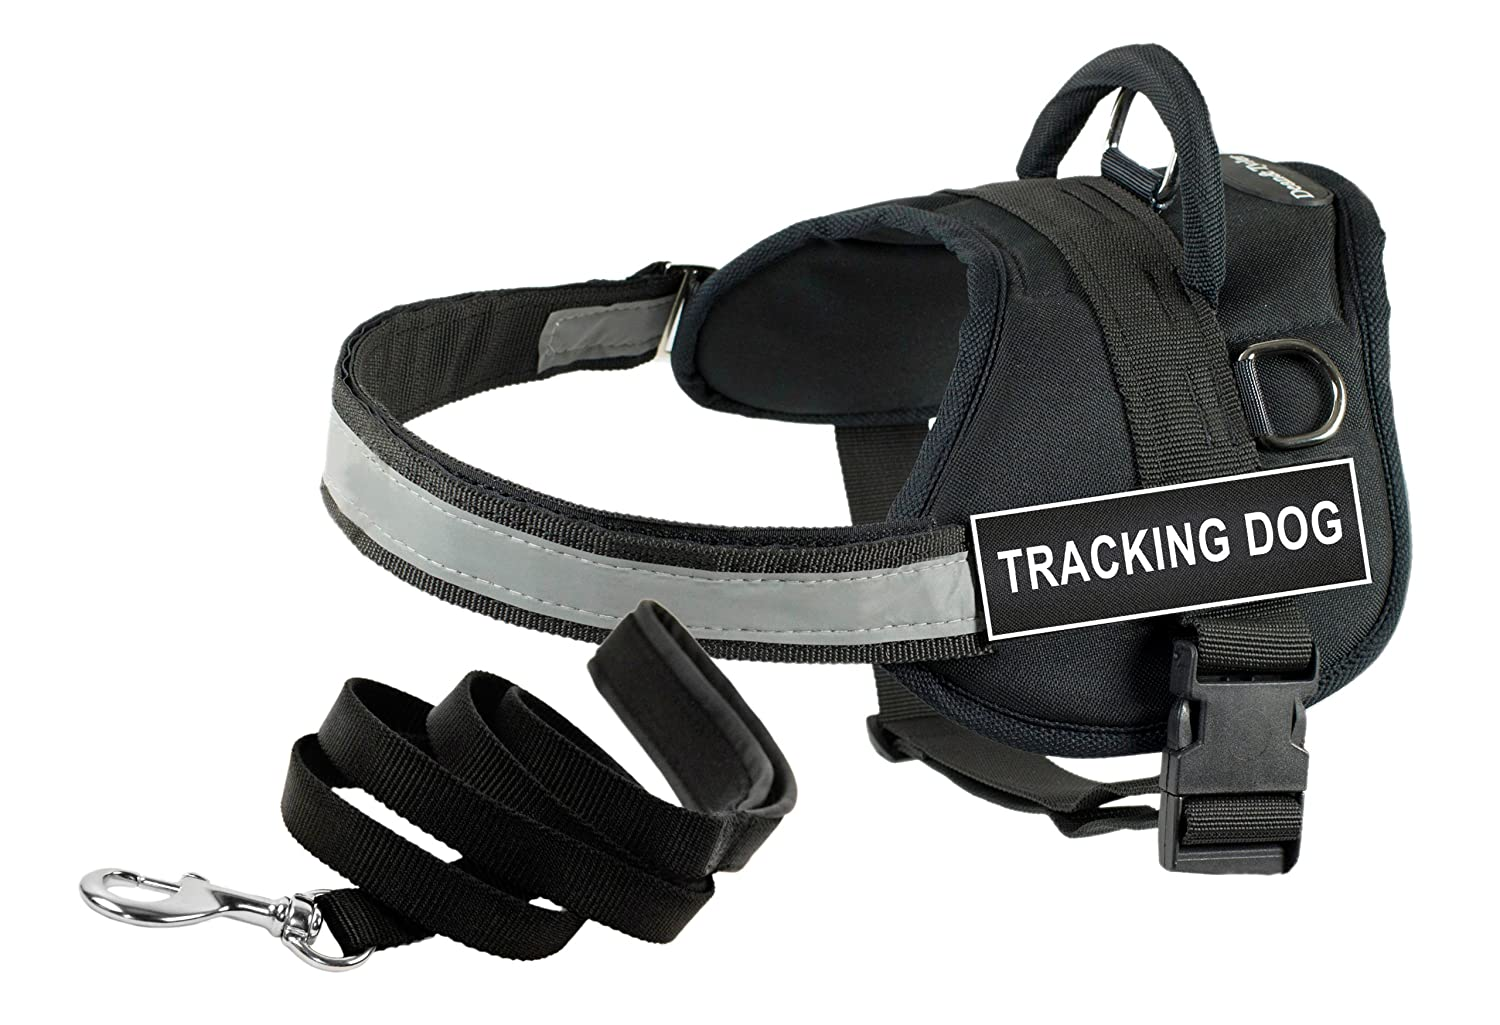 Dean & Tyler's DT Works TRACKING DOG Harness, X-Small, with 6 ft Padded Puppy Leash.